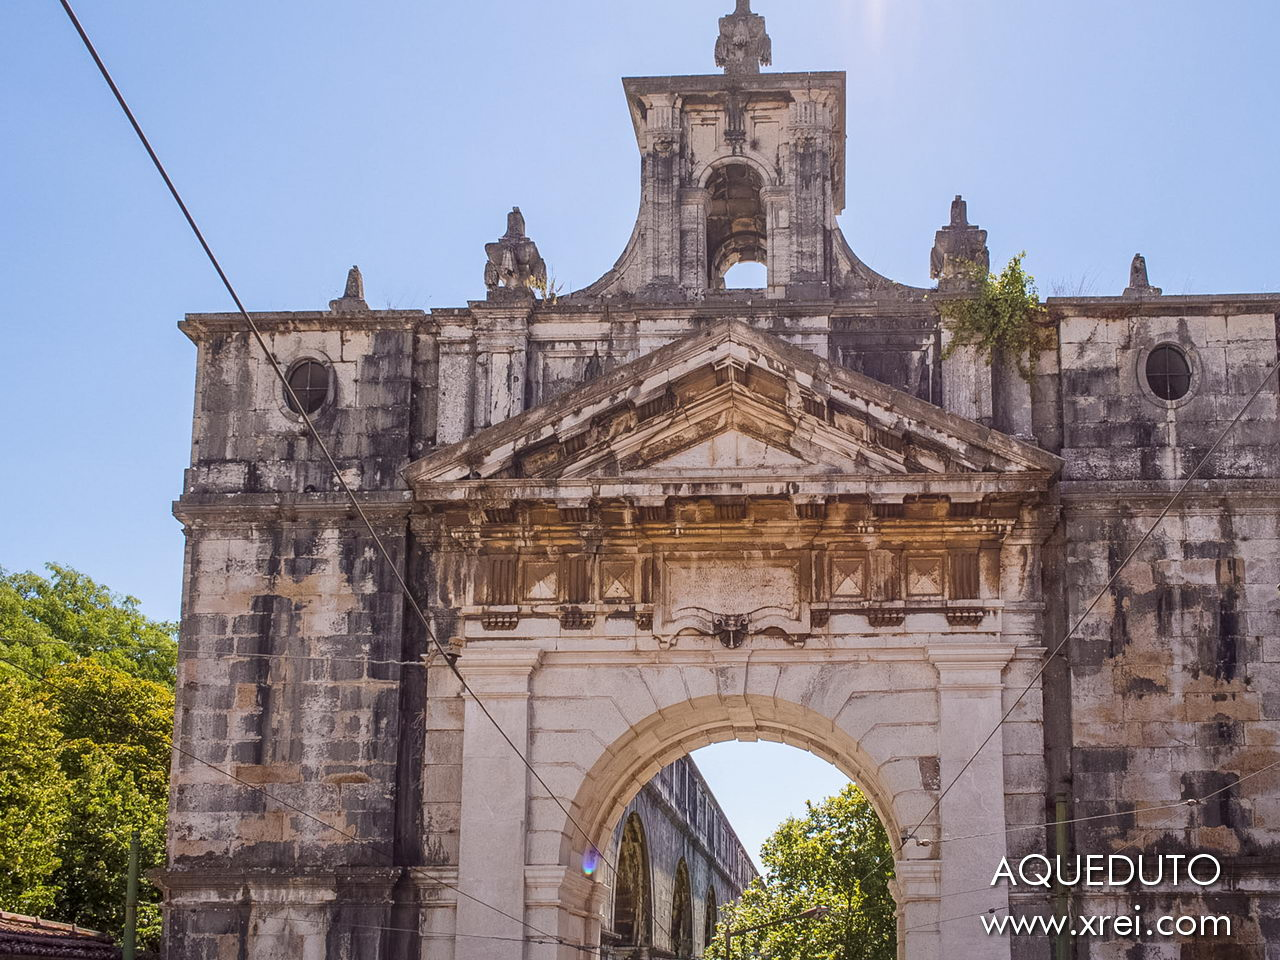 The Águas Livres Aqueduct, built between the 18th and 19th centuries, supplies water to Lisbon in a total network of 58 km of aqueduct, with the action of gravity, in which the main branch has 14km, from Mãe de Água Velha in Casal de Cambra to Campo de Ourique